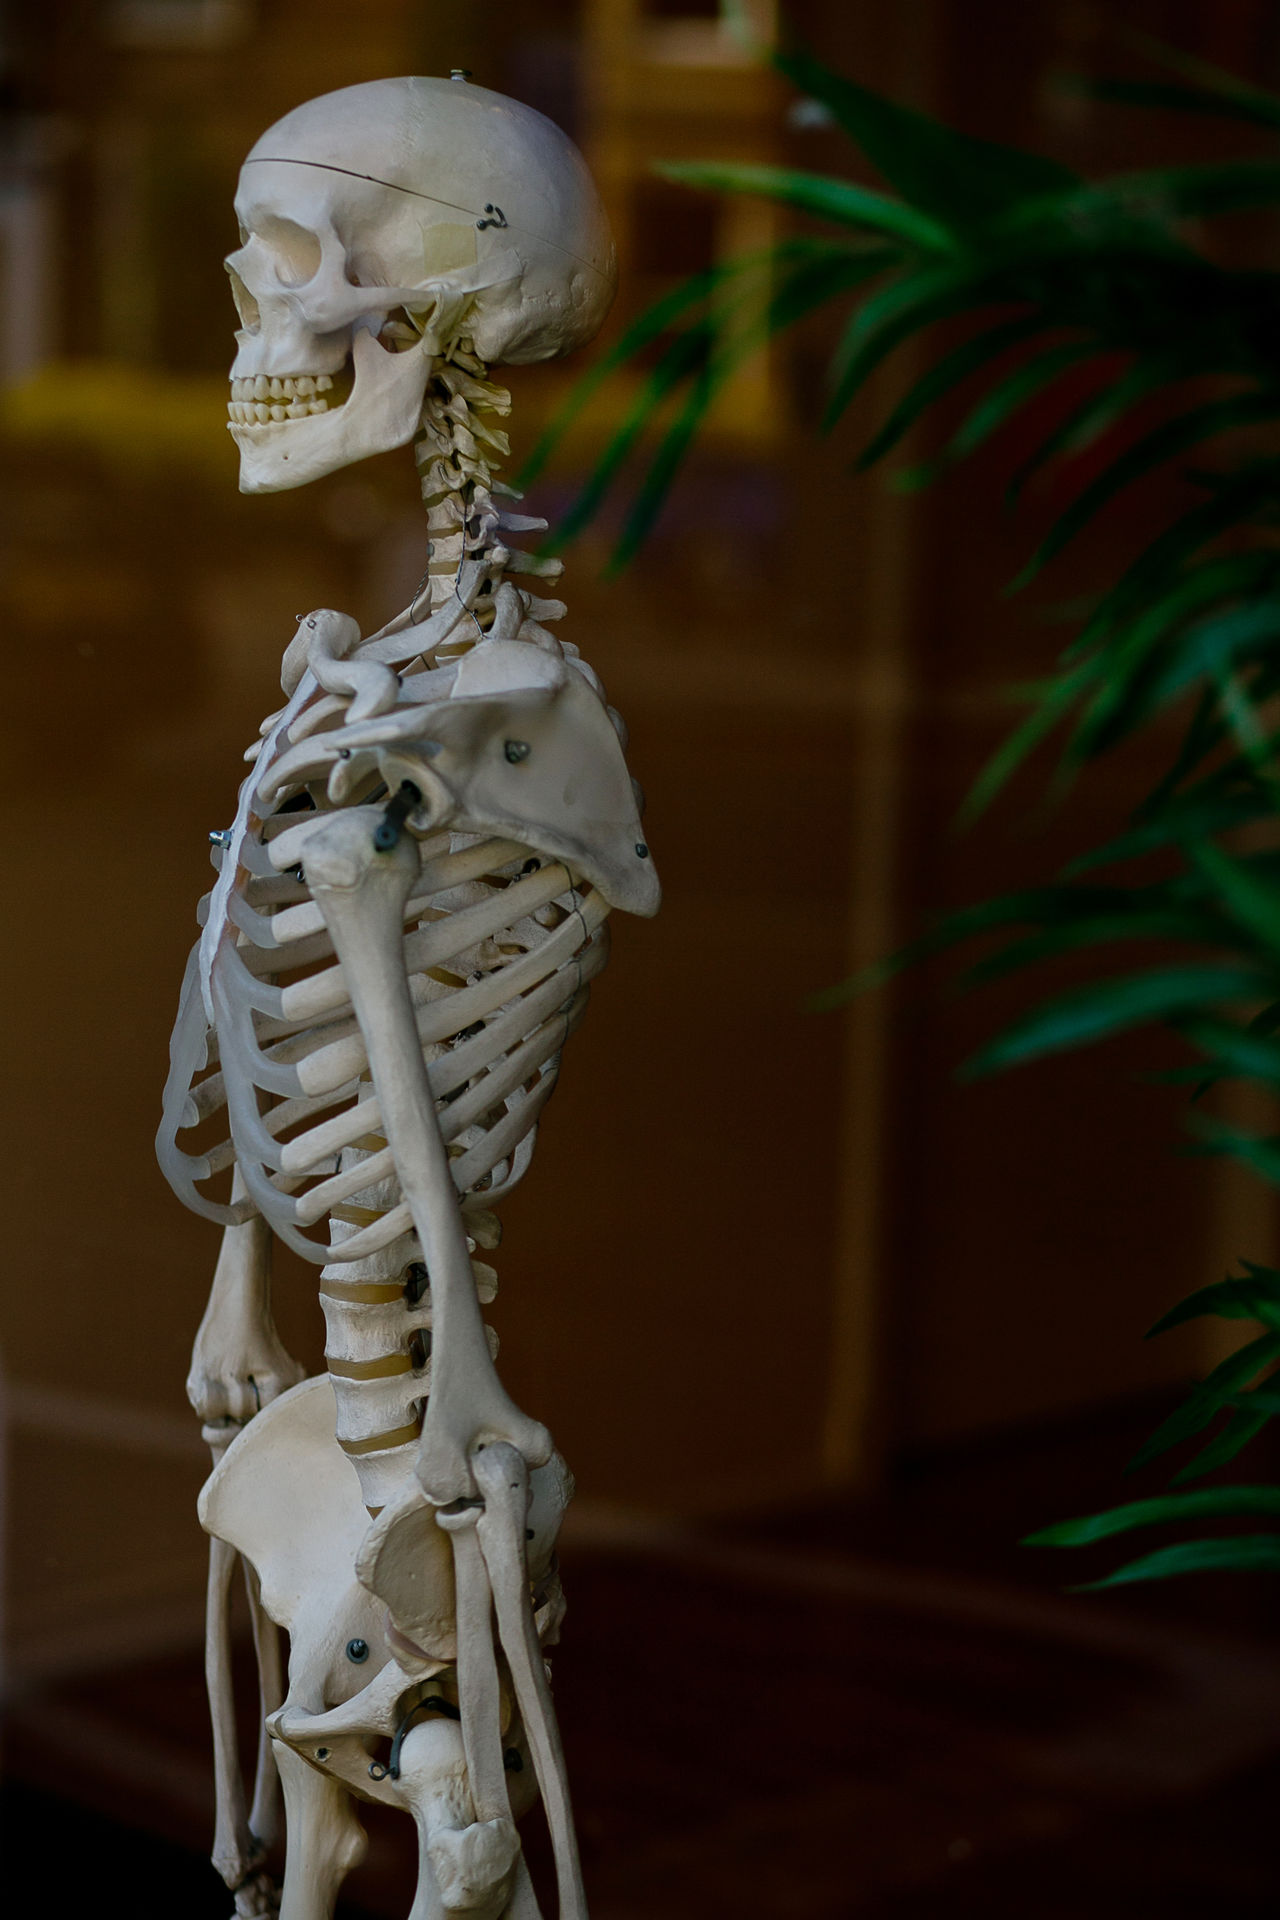 skeleton Anatomy Biology Day Discover Your City Human Body Part Human Skeleton Medical Museum No People Science